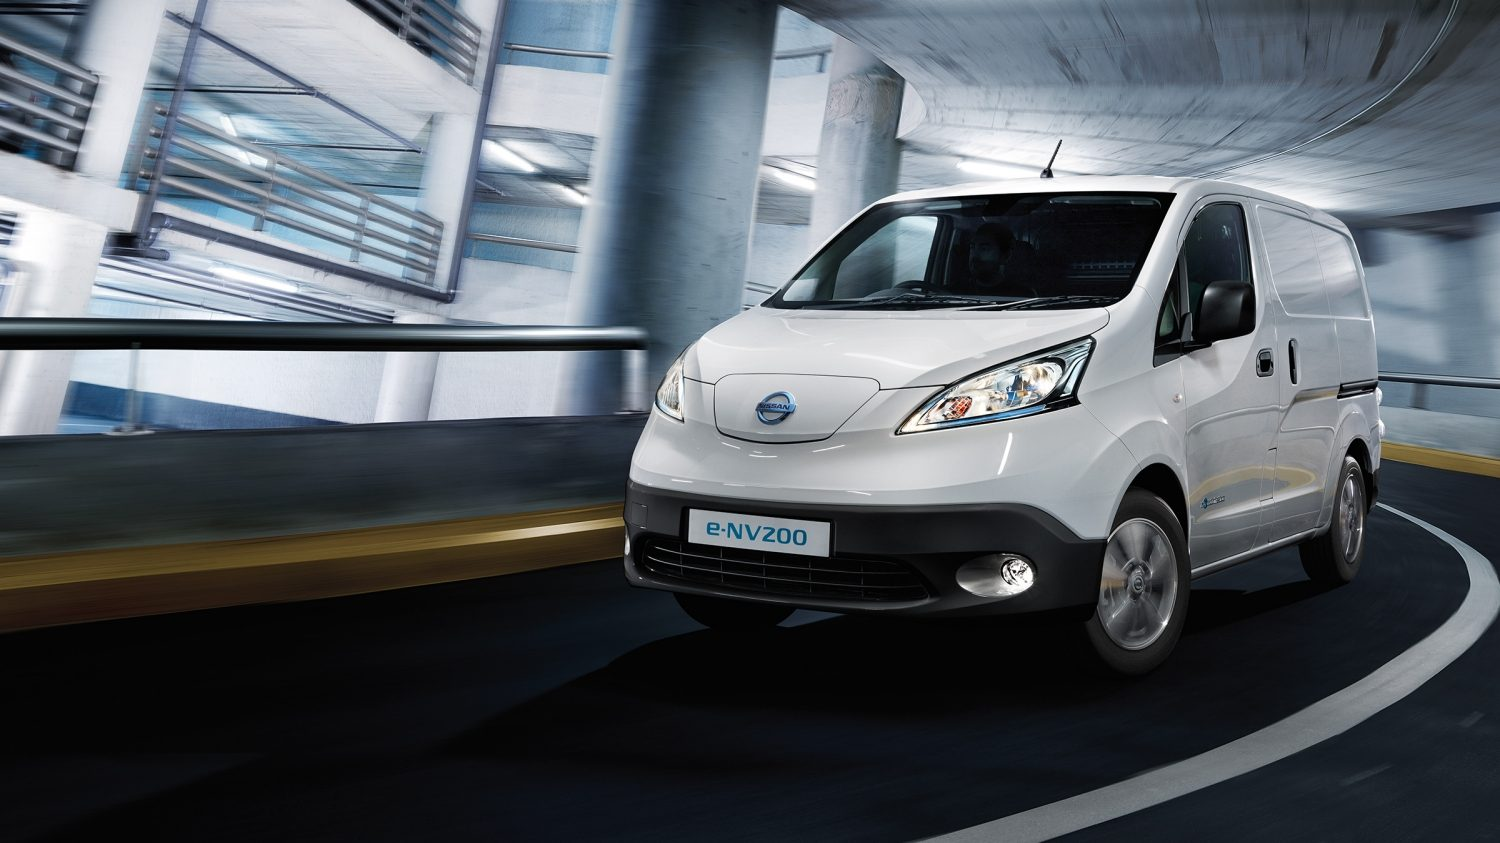 New Nissan e-NV200 VAN driving in a parking